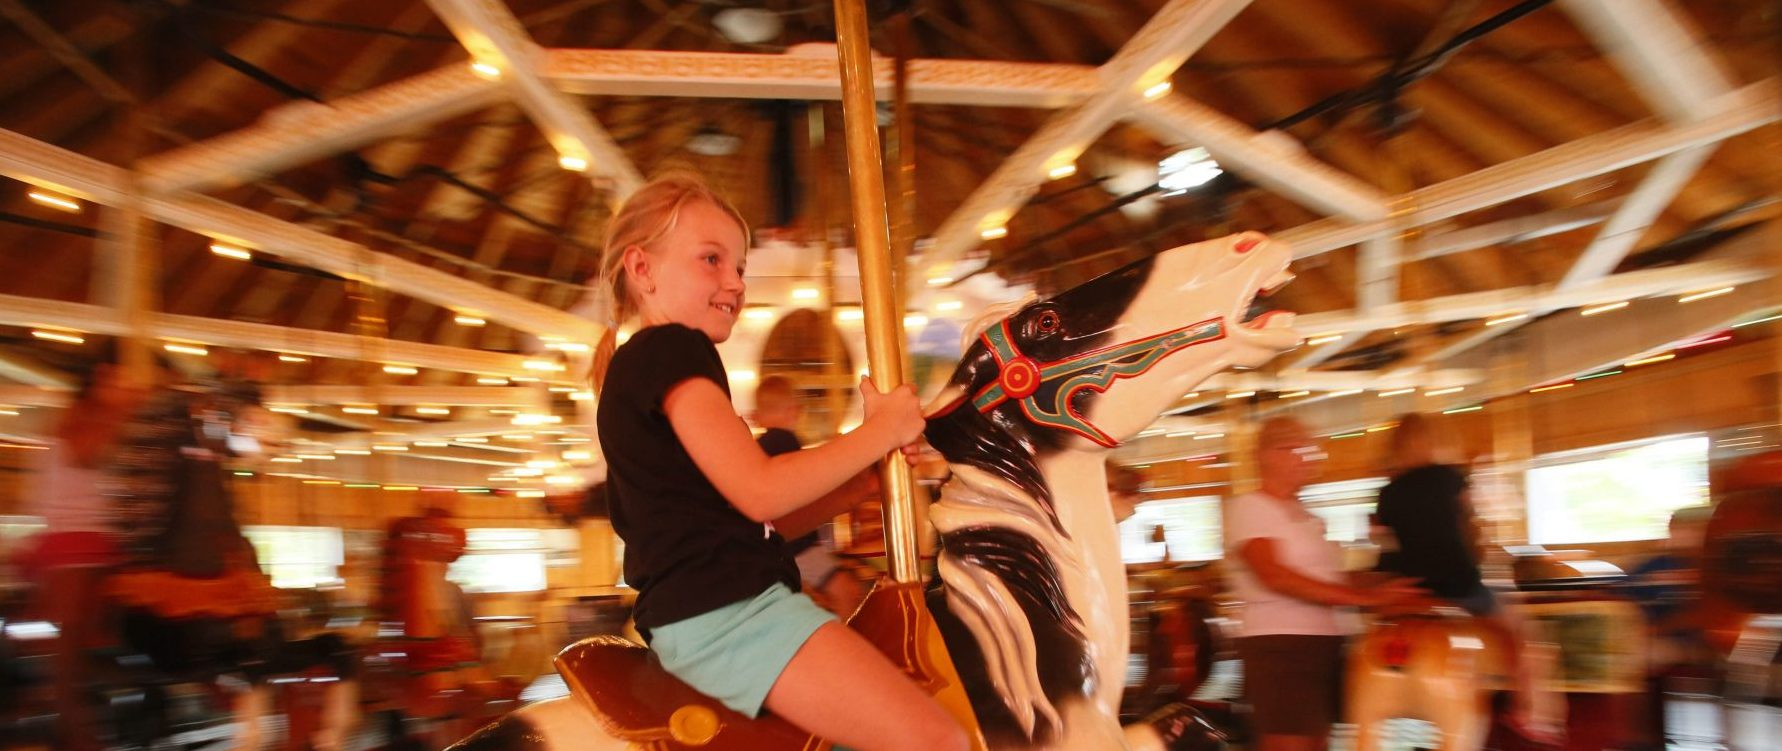 Learn about carrousel horses and even ride one at the Herschell Carrousel Factory Museum in North Tonawanda. (Derek Gee/News file photo)